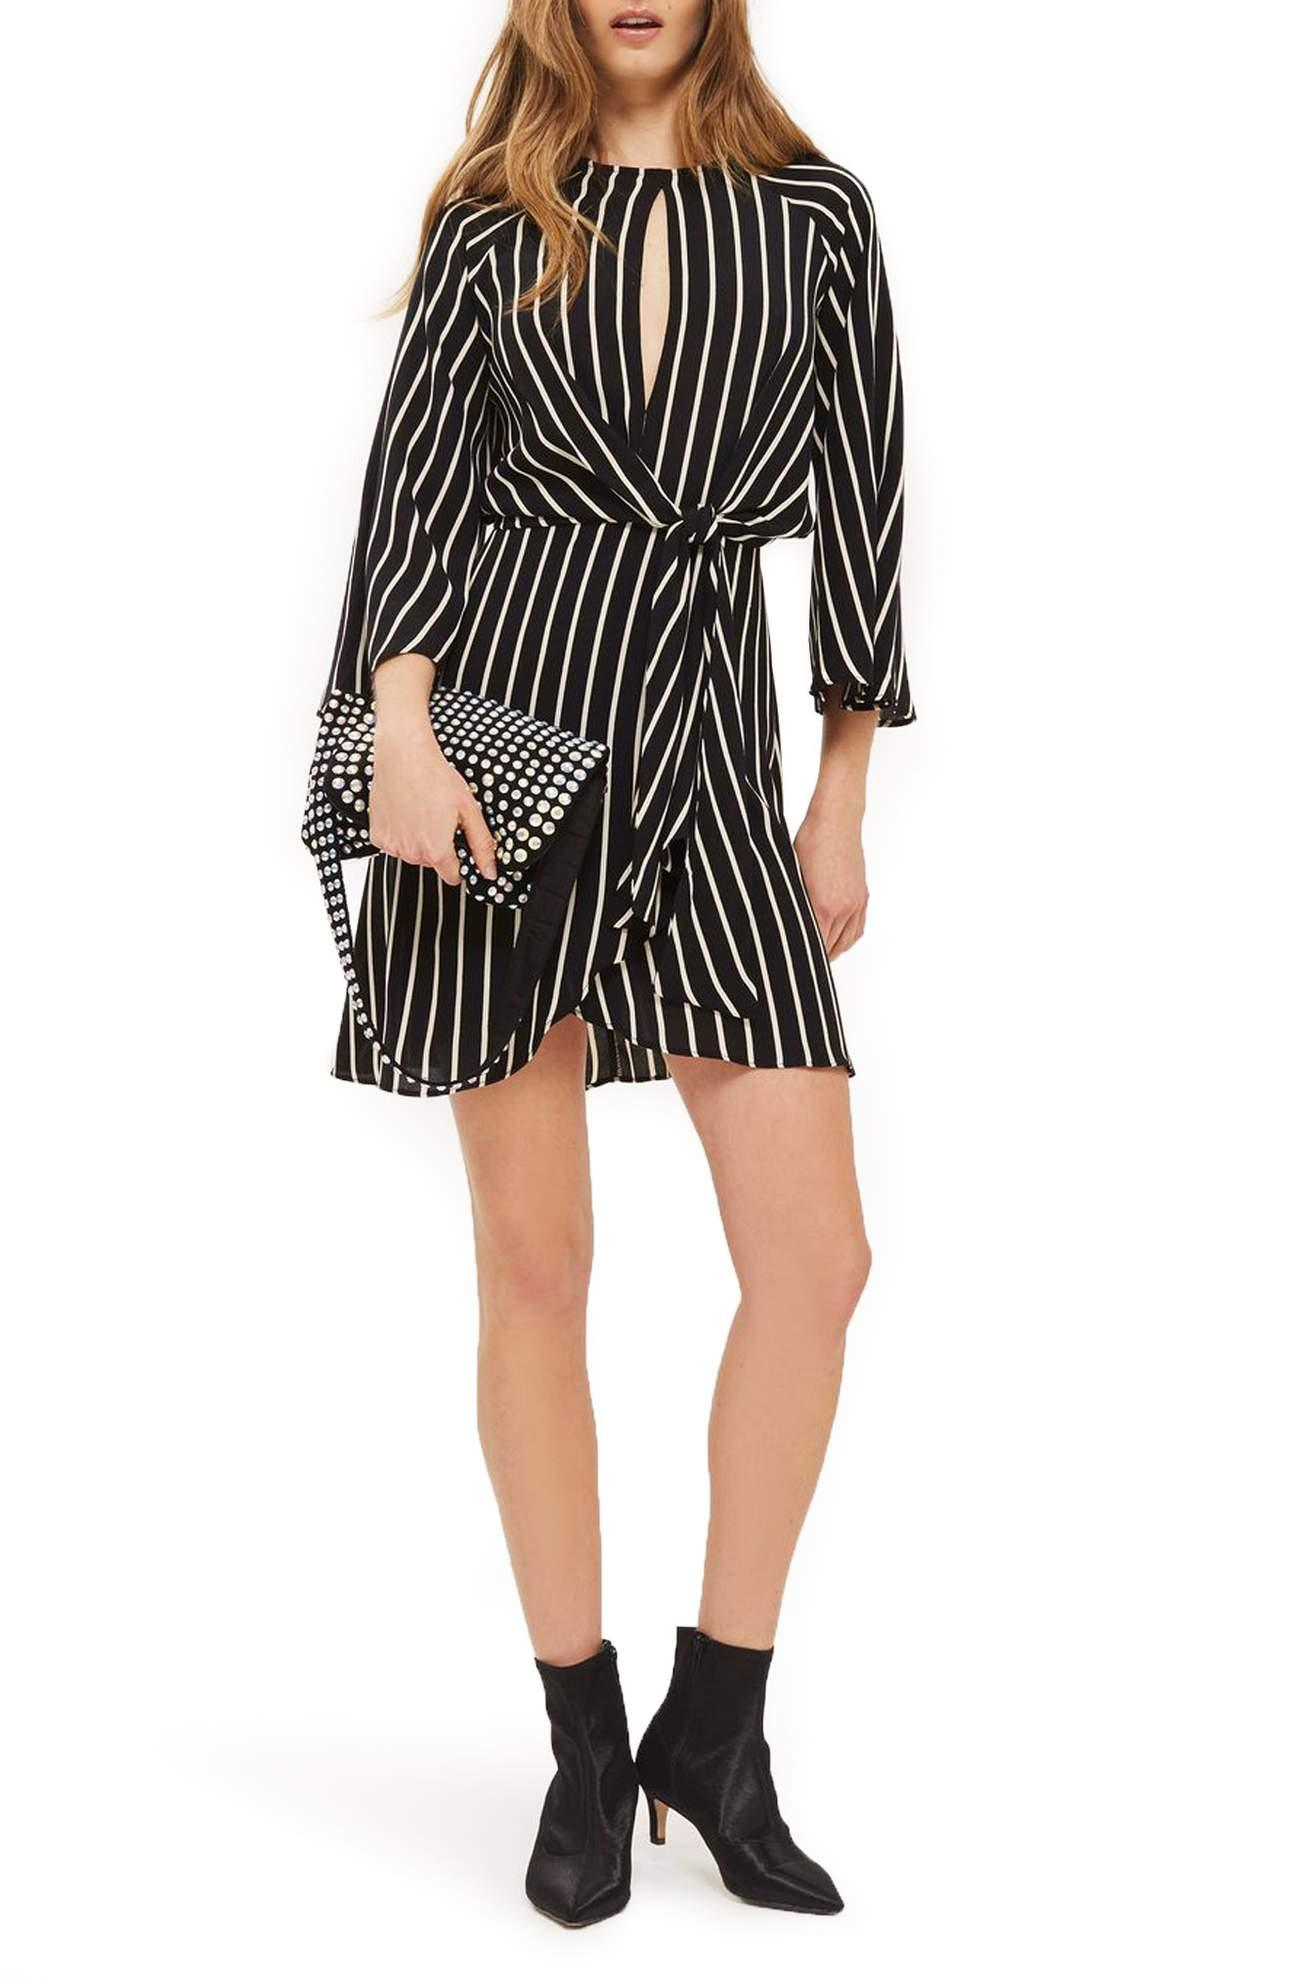 <p>More stripes please!{&nbsp;} Check out this Stripe Knot Front Minidress/TOPSHOP.{&nbsp;} Flowy drape and bold stripes are the design aesthetic of this raglan-sleeve dress with a tulip-style skirt and panels that gather to knot at the front waist. $90.00 at Nordstrom. (Image: Nordstrom){&nbsp;}</p><p></p>